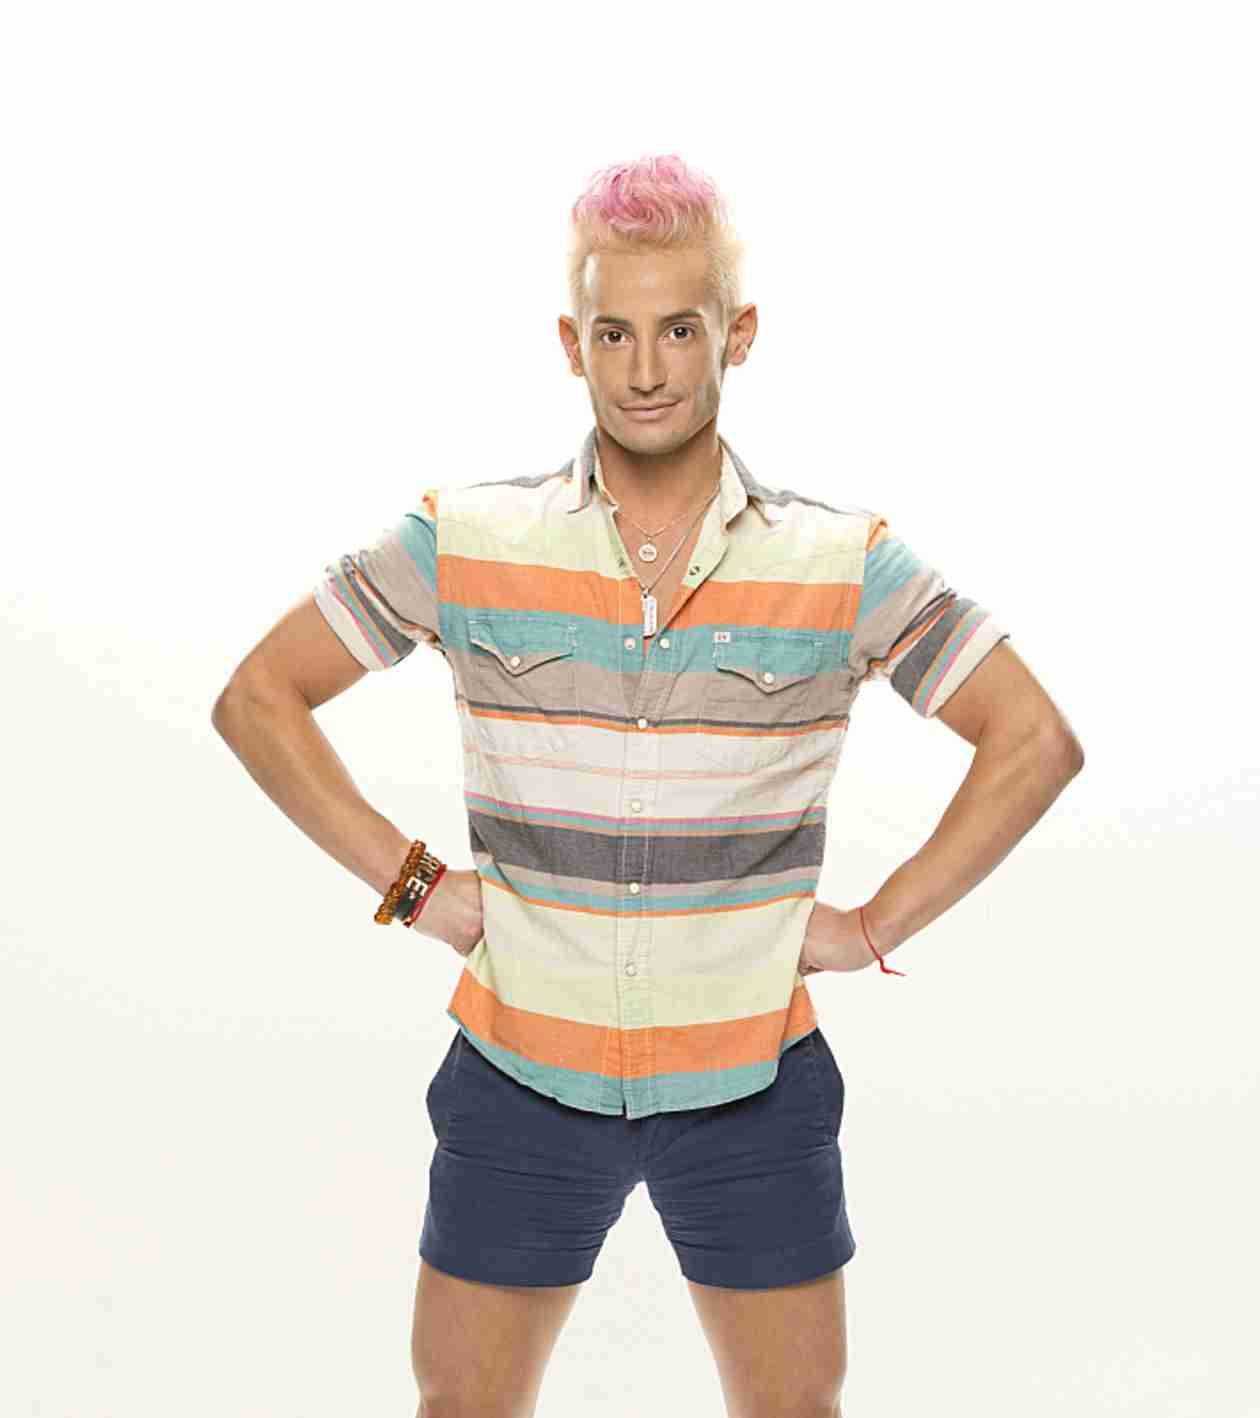 Big Brother 16 Spoilers: Frankie Grande Voted Out? (UPDATE: Yep!) (VIDEO)